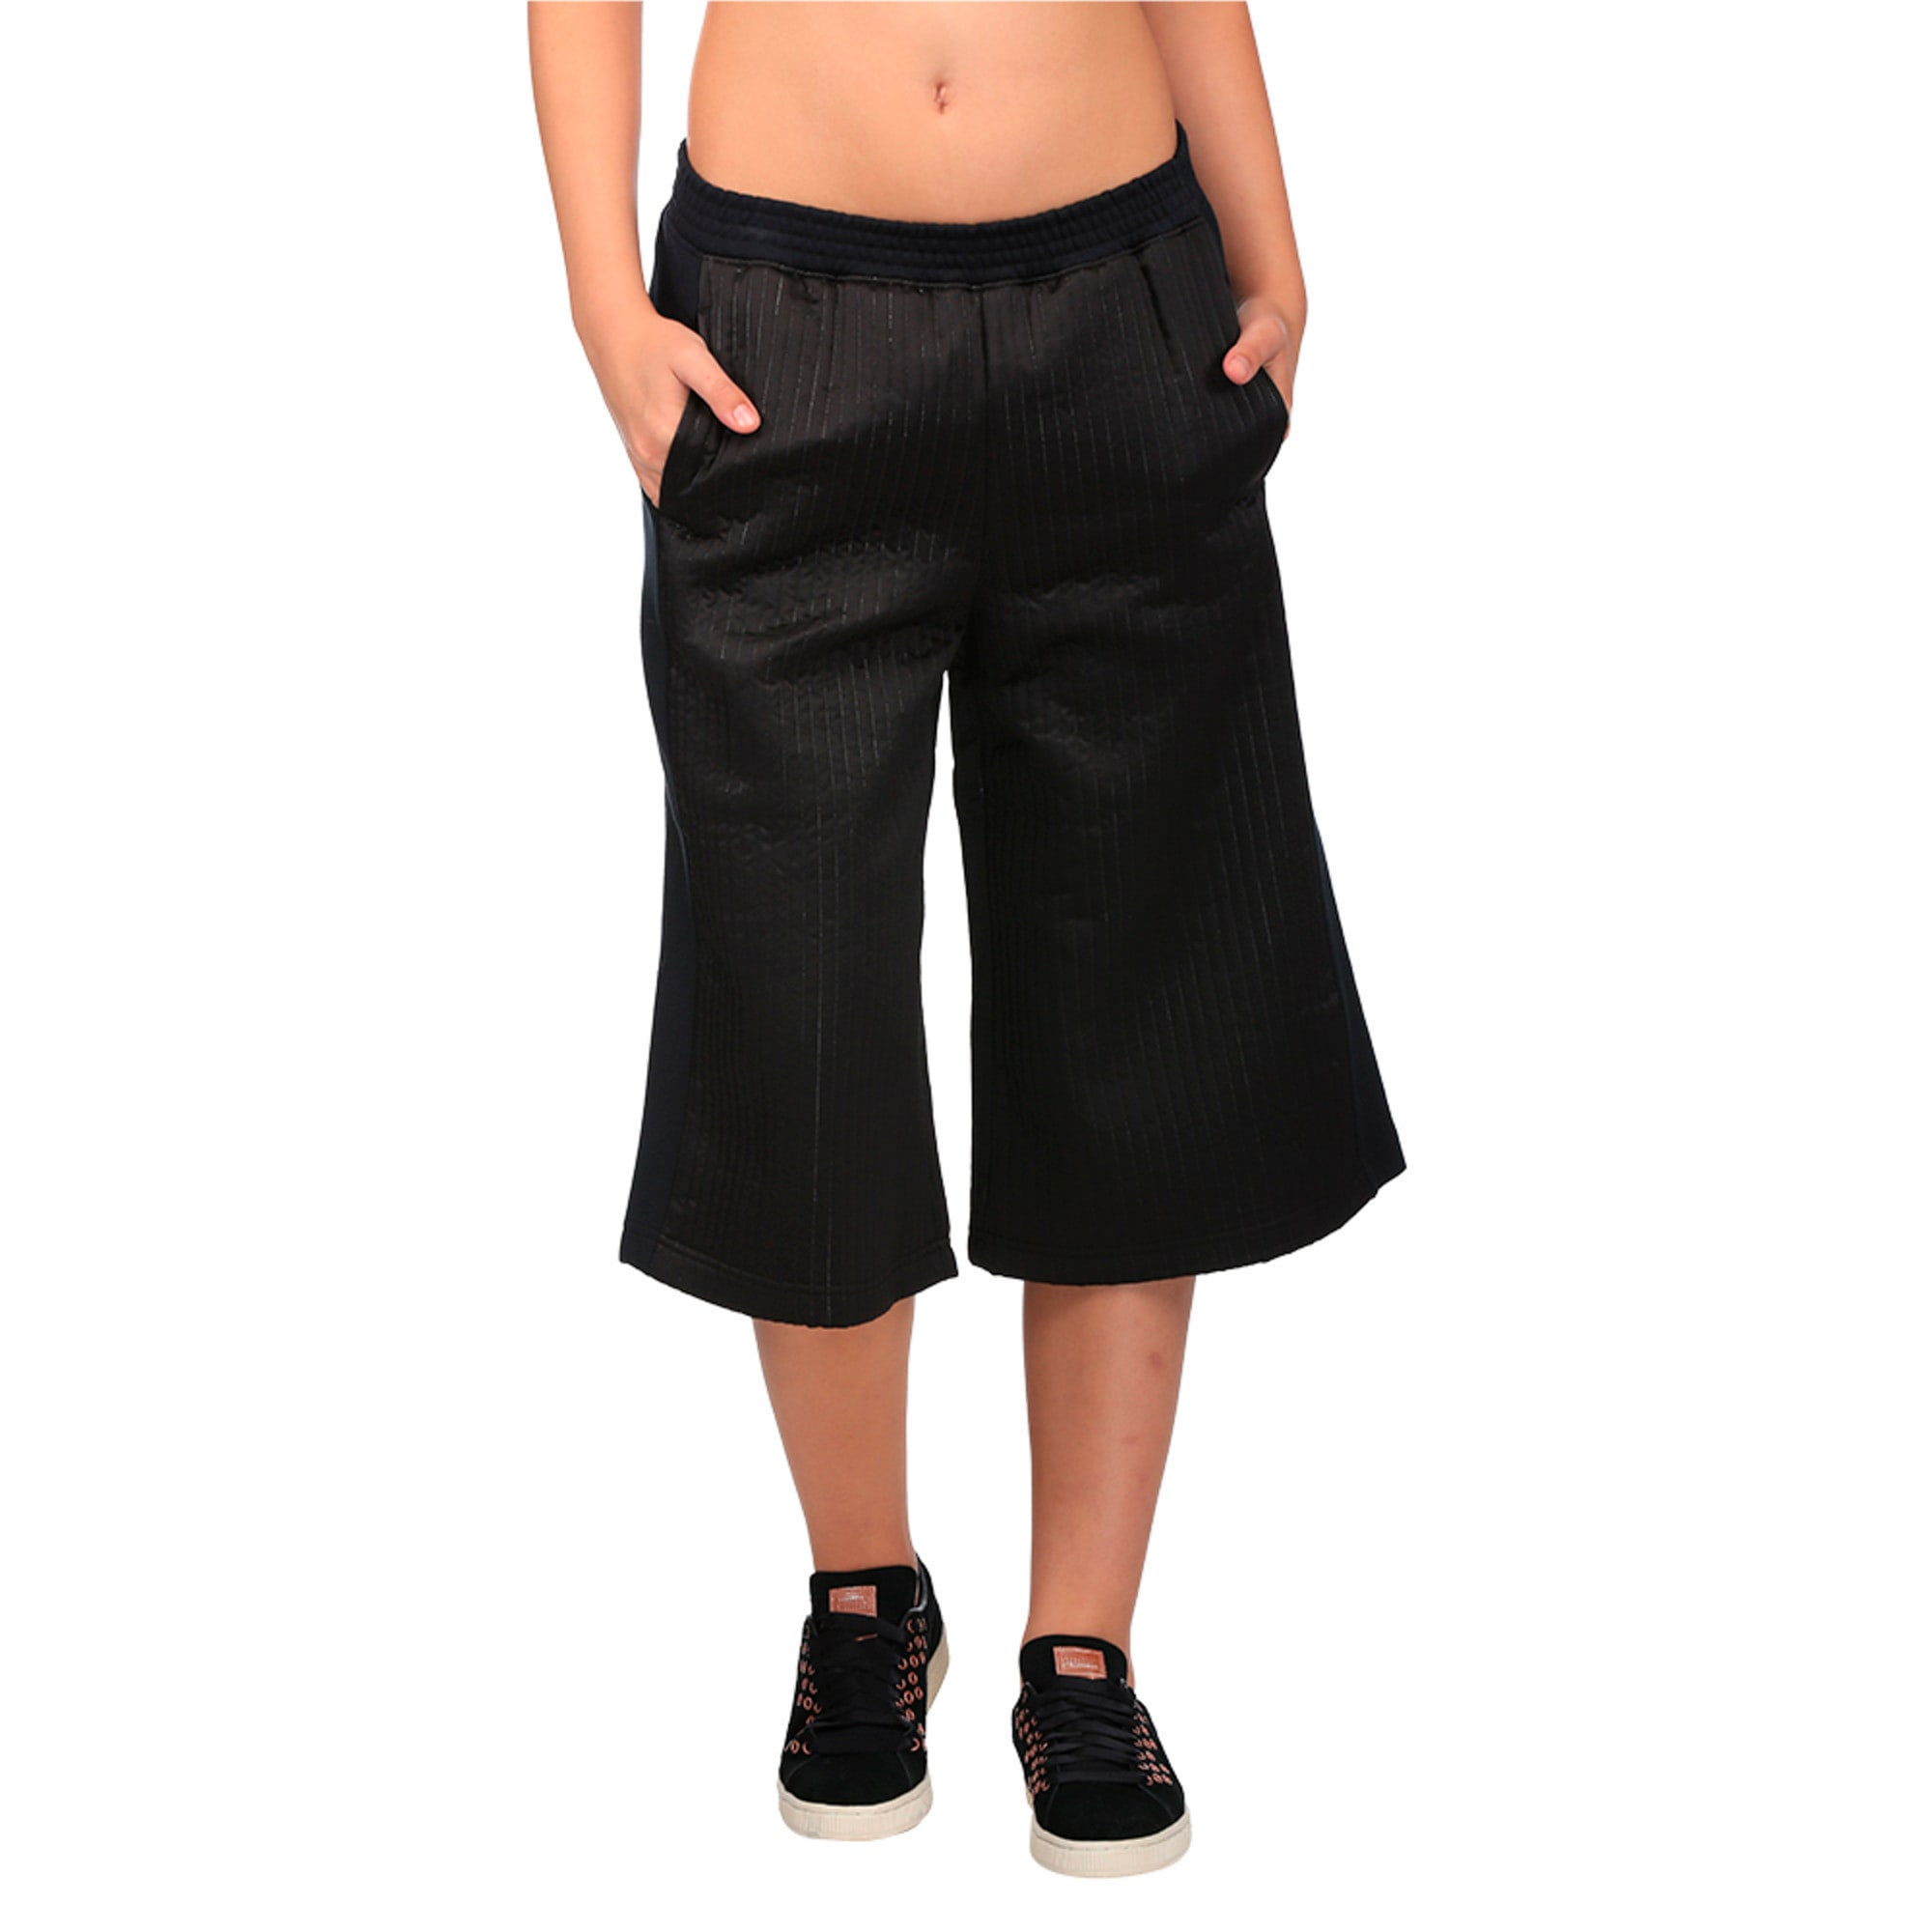 Thumbnail 1 of Evolution Women's Quilted Culottes, Puma Black, medium-IND